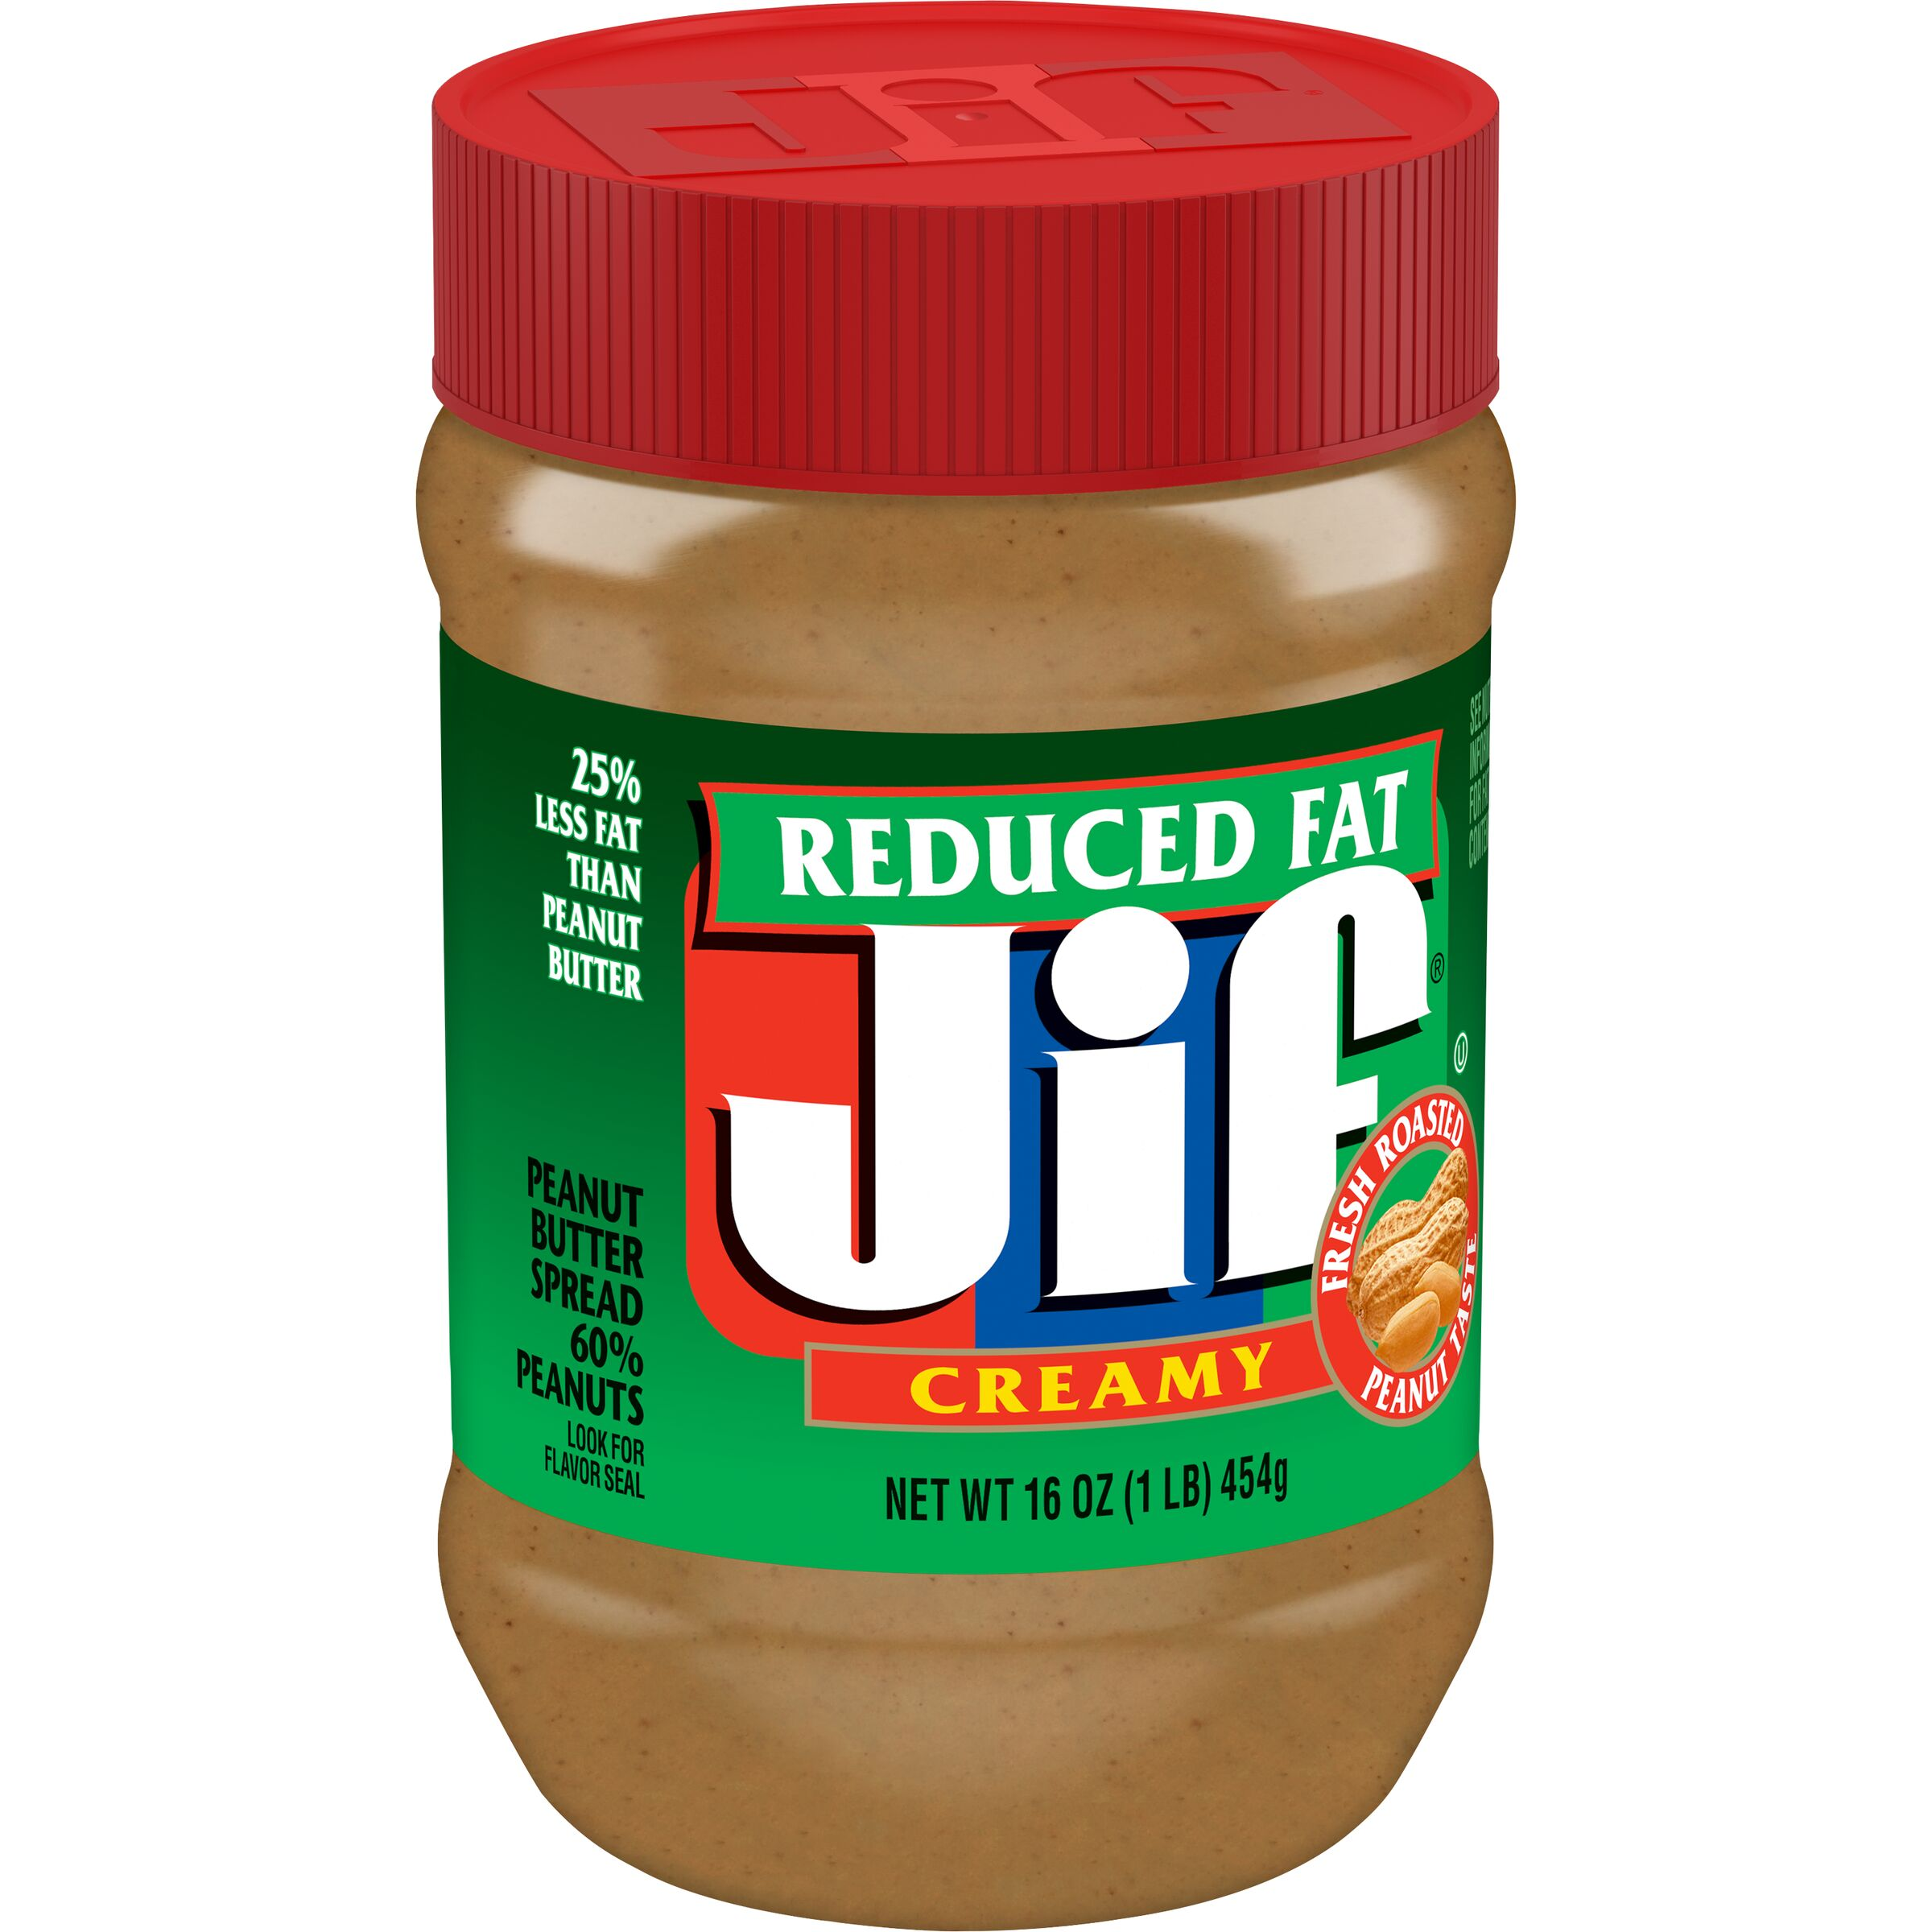 Jif  Reduced Fat Creamy Peanut Butter Spread Contains 60% Peanuts